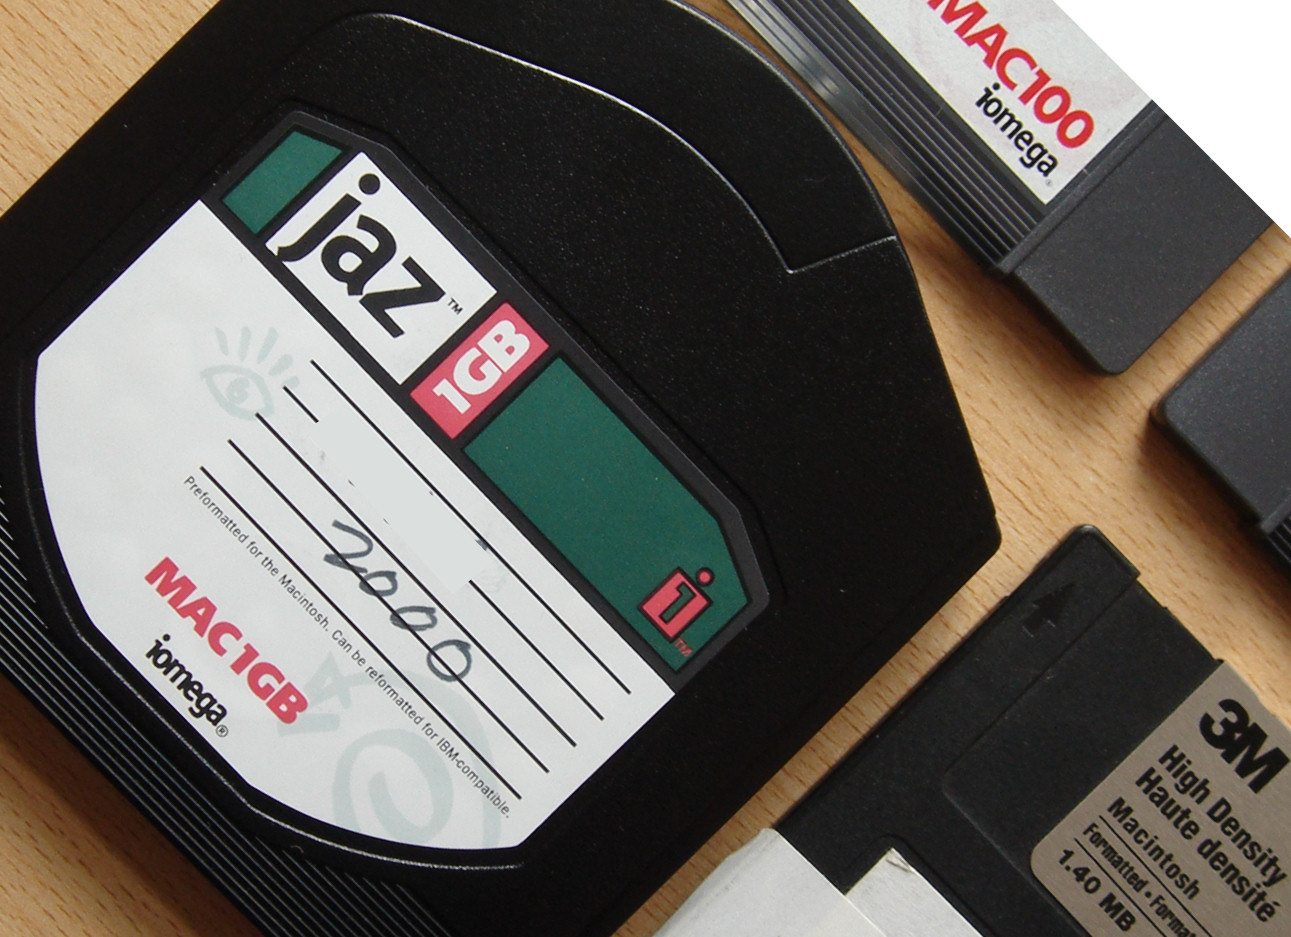 An Iomega Jaz disk pictured at a 45 degree angle with some other Jaz and floppy disks. The disks were ready for recovering data in our lab.